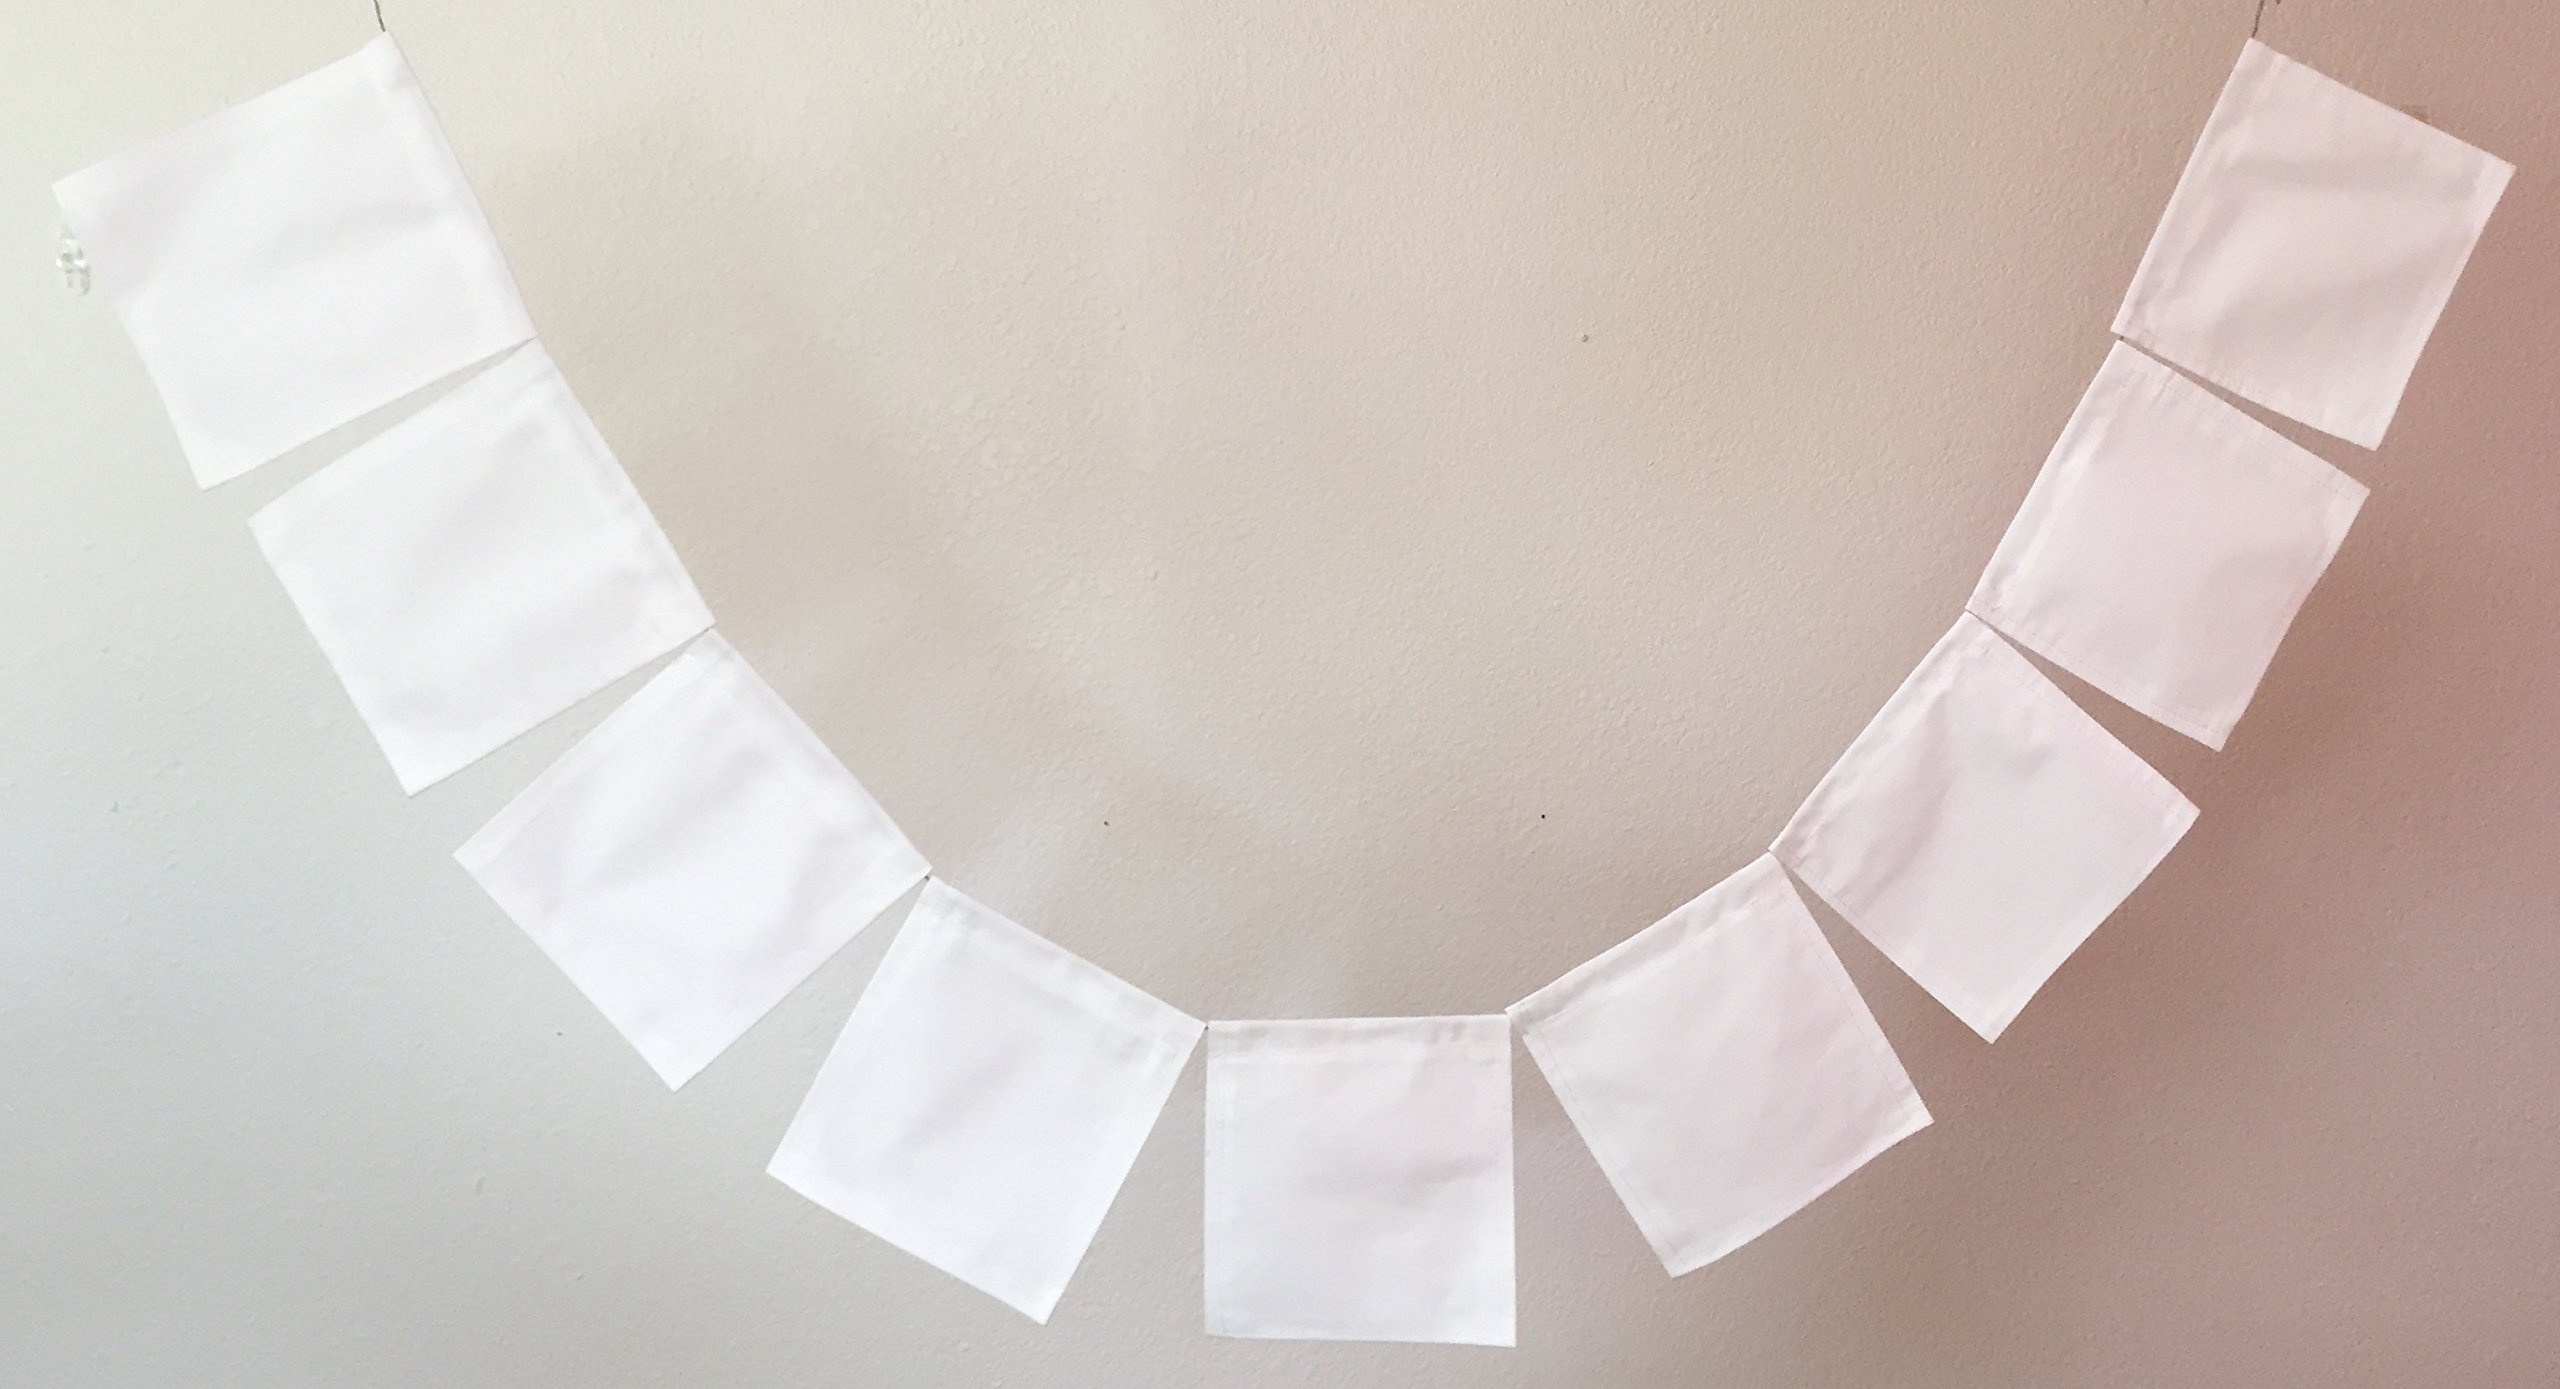 Custom Plain White Prayer Flags for Your Own Design. Free shipping. All proceeds to families in Mexico.